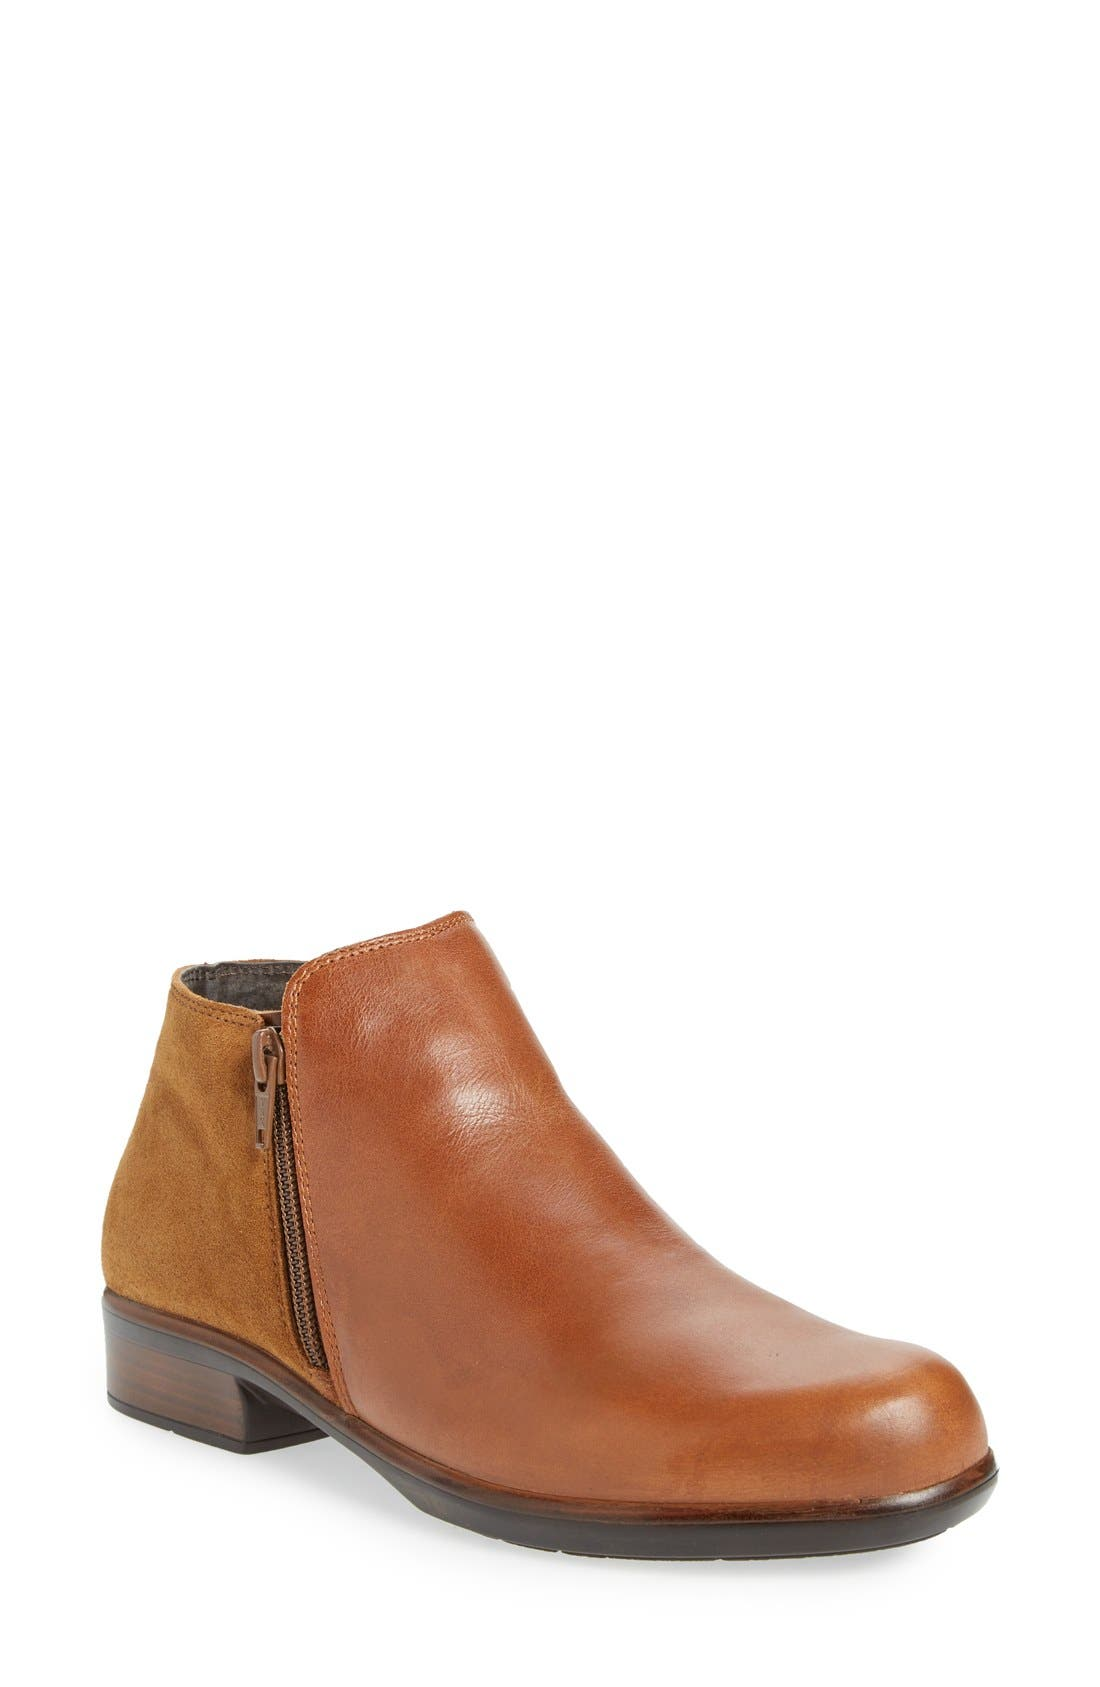 Alternate Image 1 Selected - Naot 'Helm' Bootie (Women)